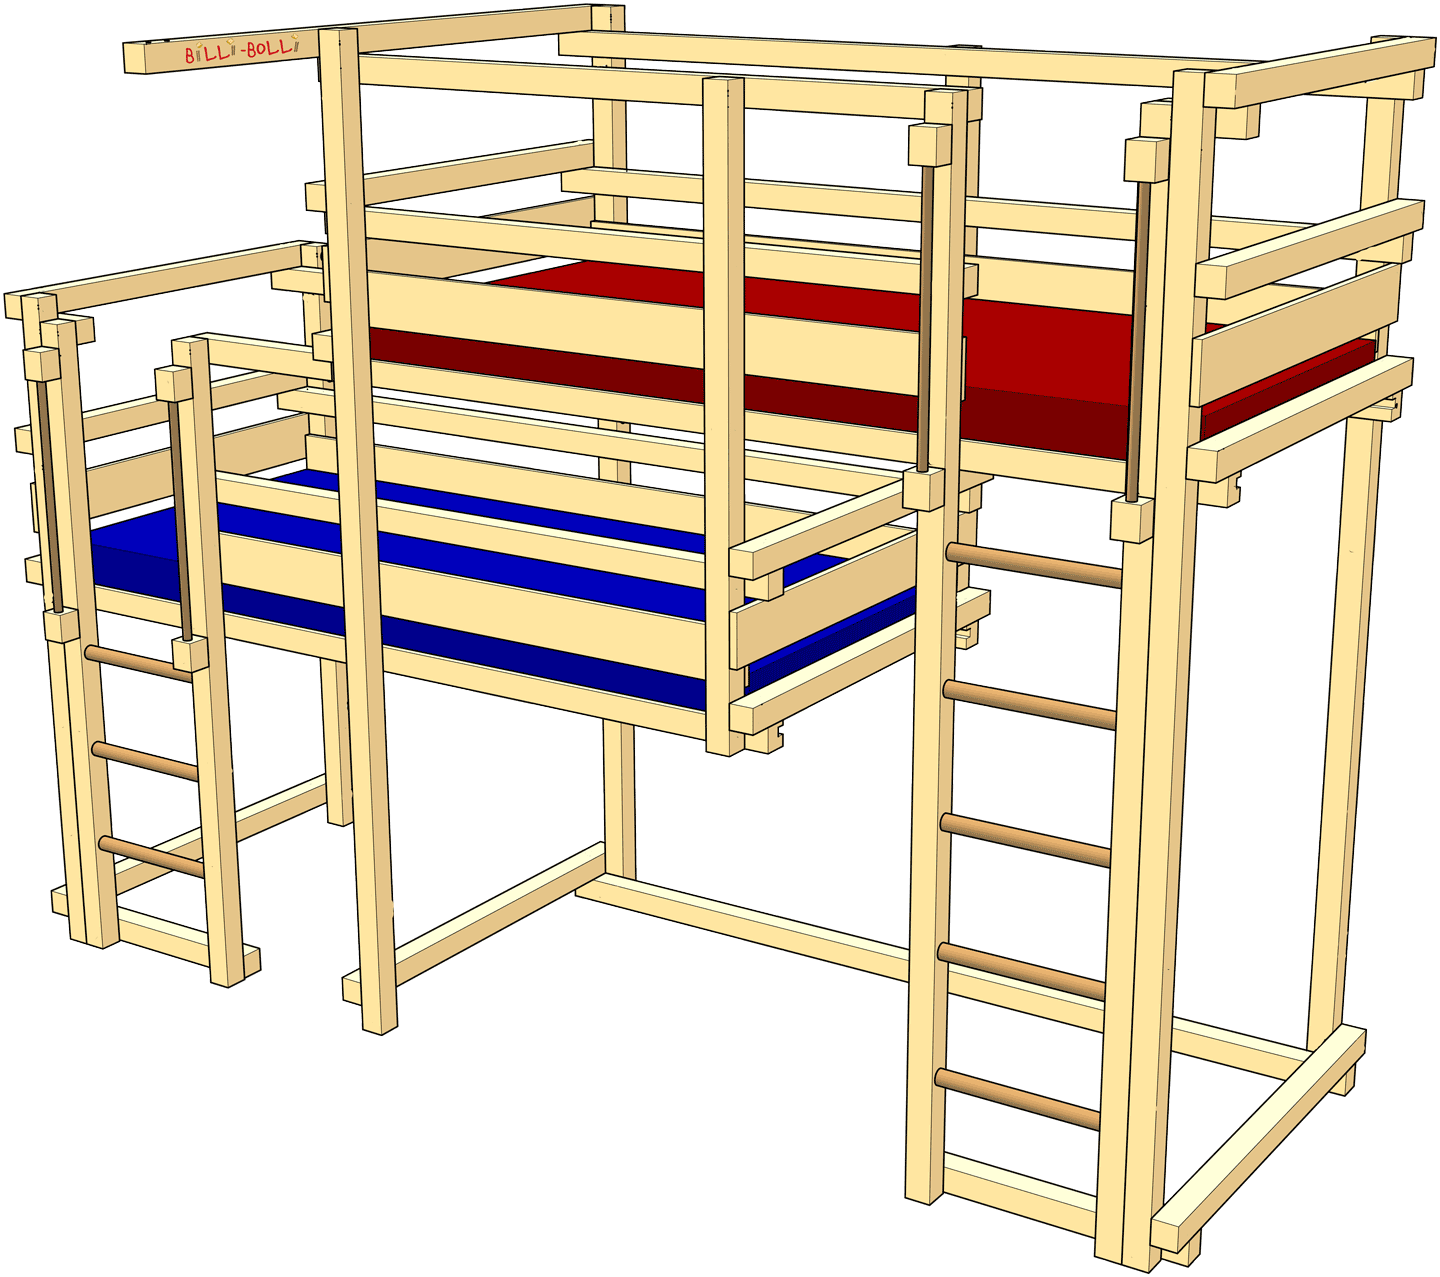 Both-Up Bunk Beds for two children (Kids' Beds)